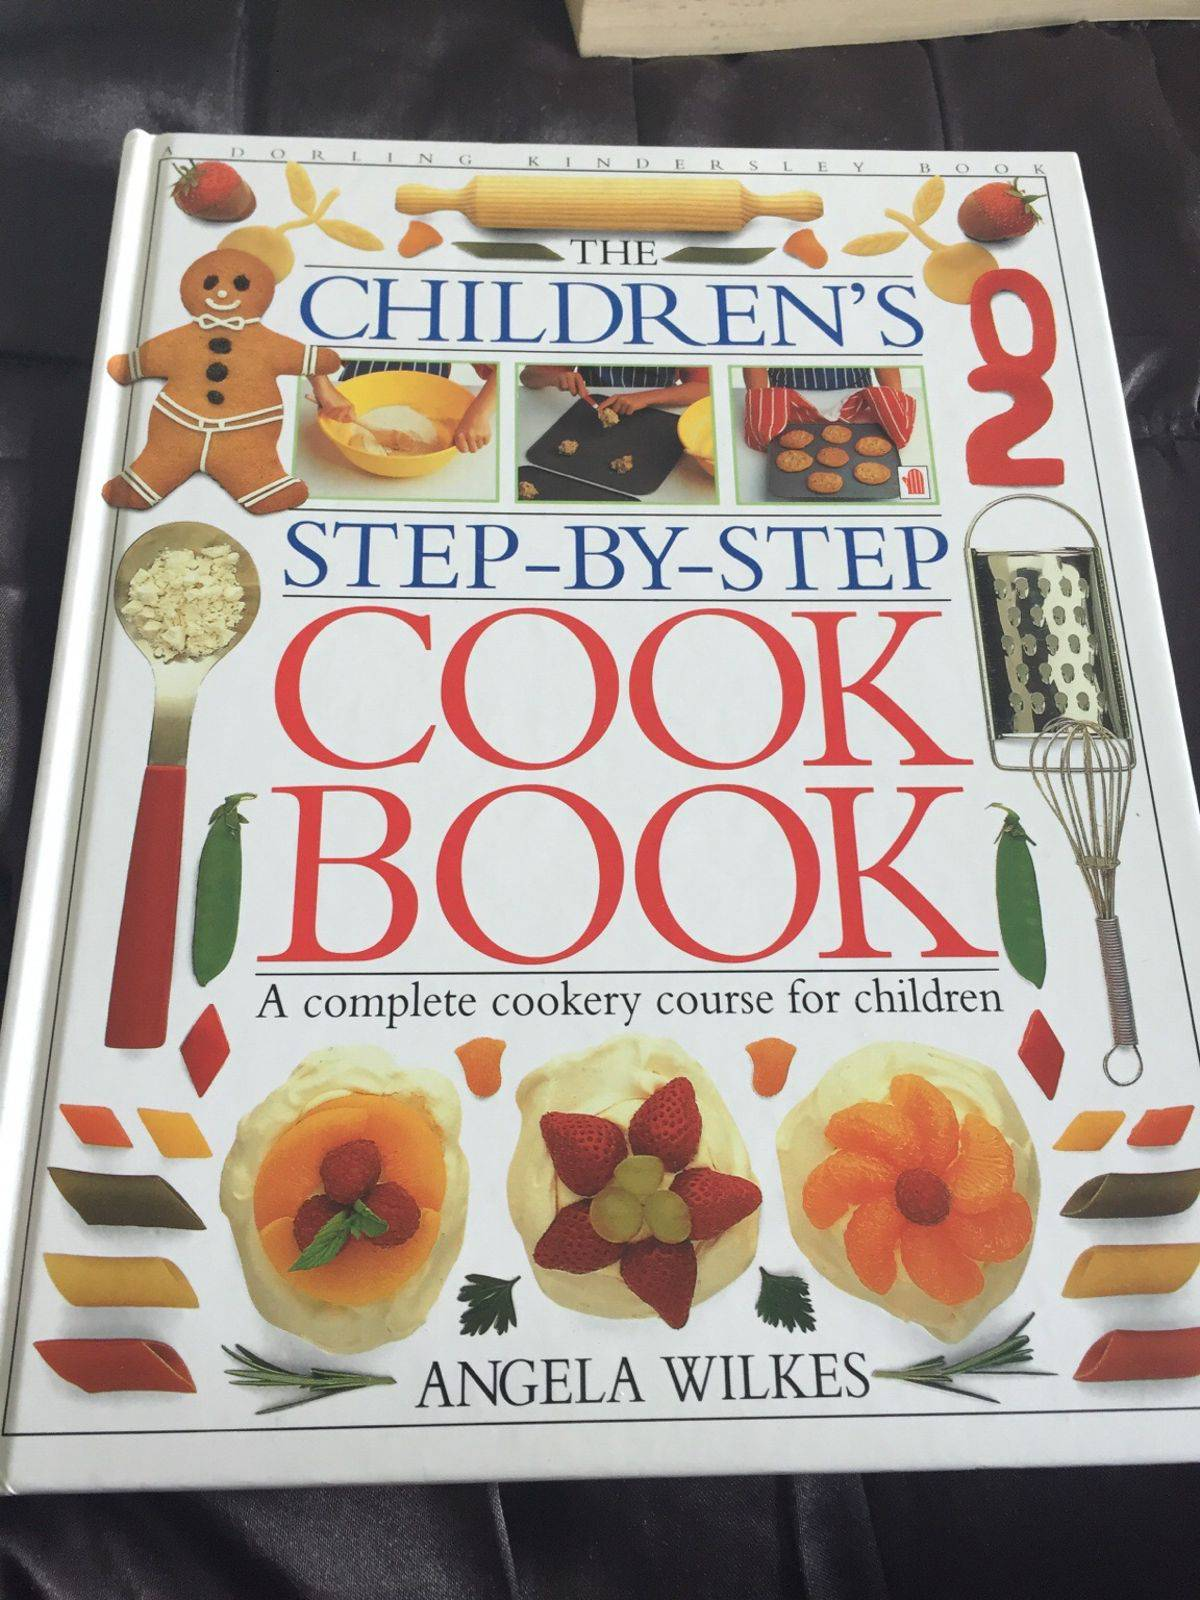 The children's step-by-step cook book by Angela Wilkes